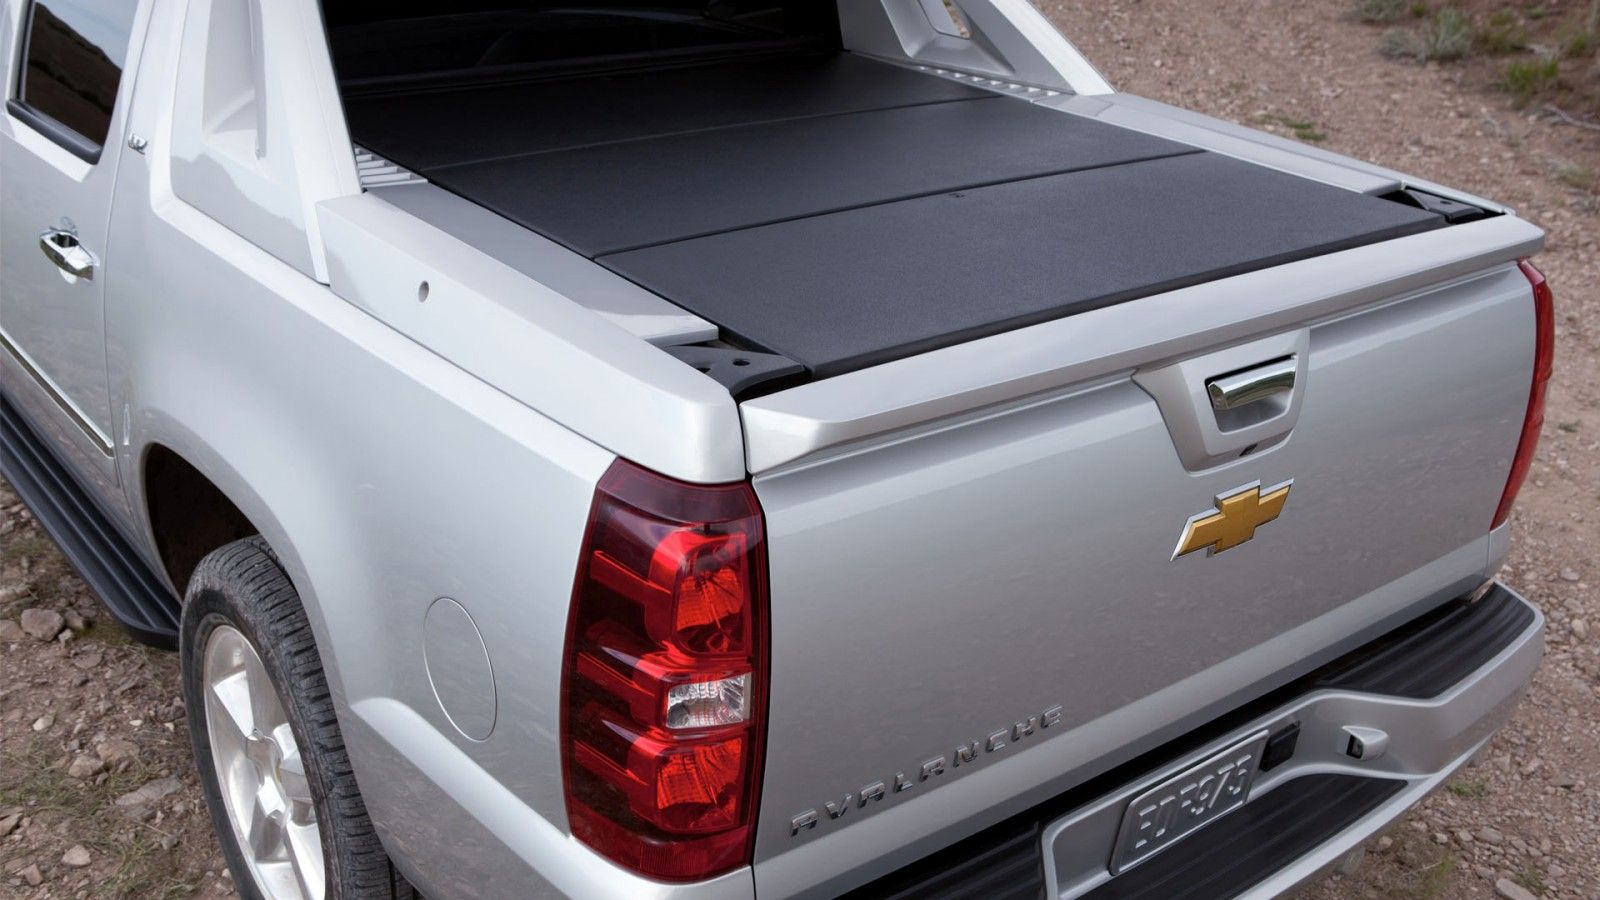 The Chevy Avalanche Ltz Seen Here In Silver Ice Metallic Features 2004 Chevrolet Wiring Plug Door A Removable And Secure Three Piece Cargo Cover